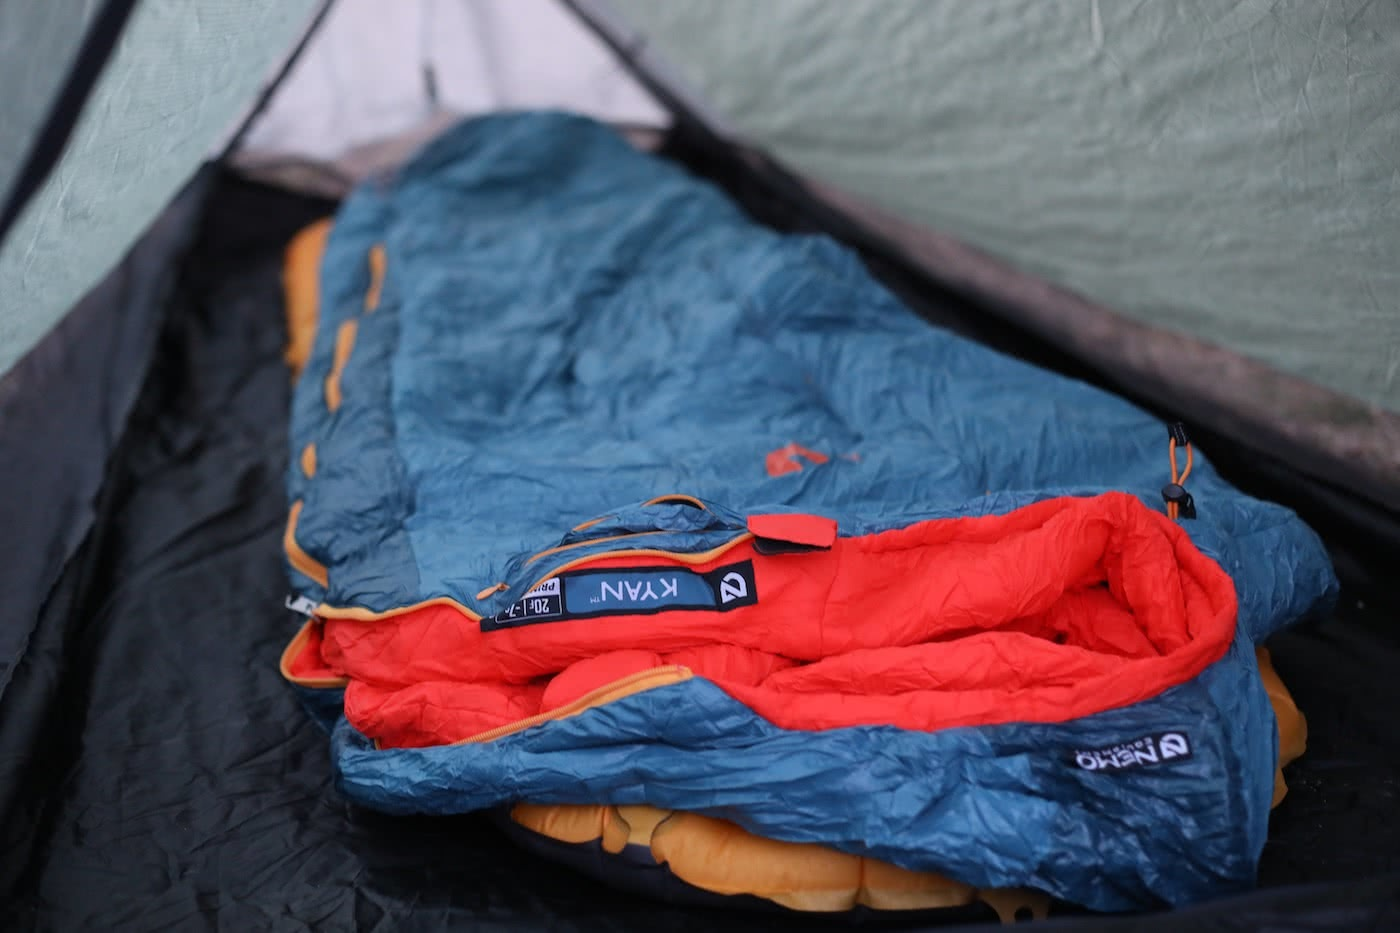 NEMO Kyan Mummy Bag & Tensor Ultralight Sleeping Pad // Gear Review by Mattie Gould Kyan bag